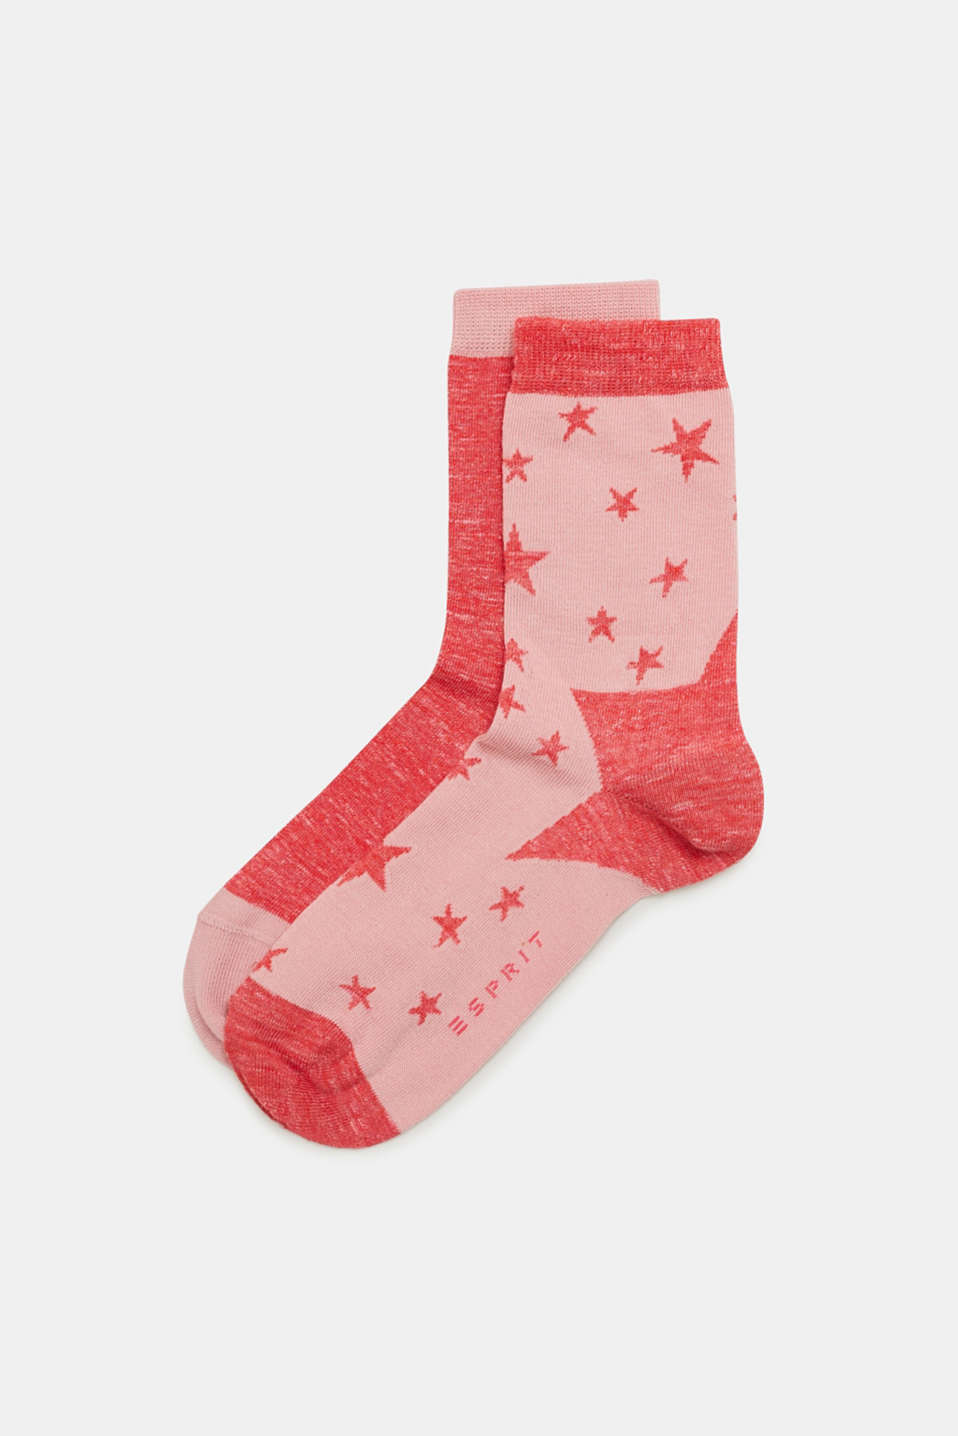 Esprit - In a pack of two: melange socks with a star intarsia pattern